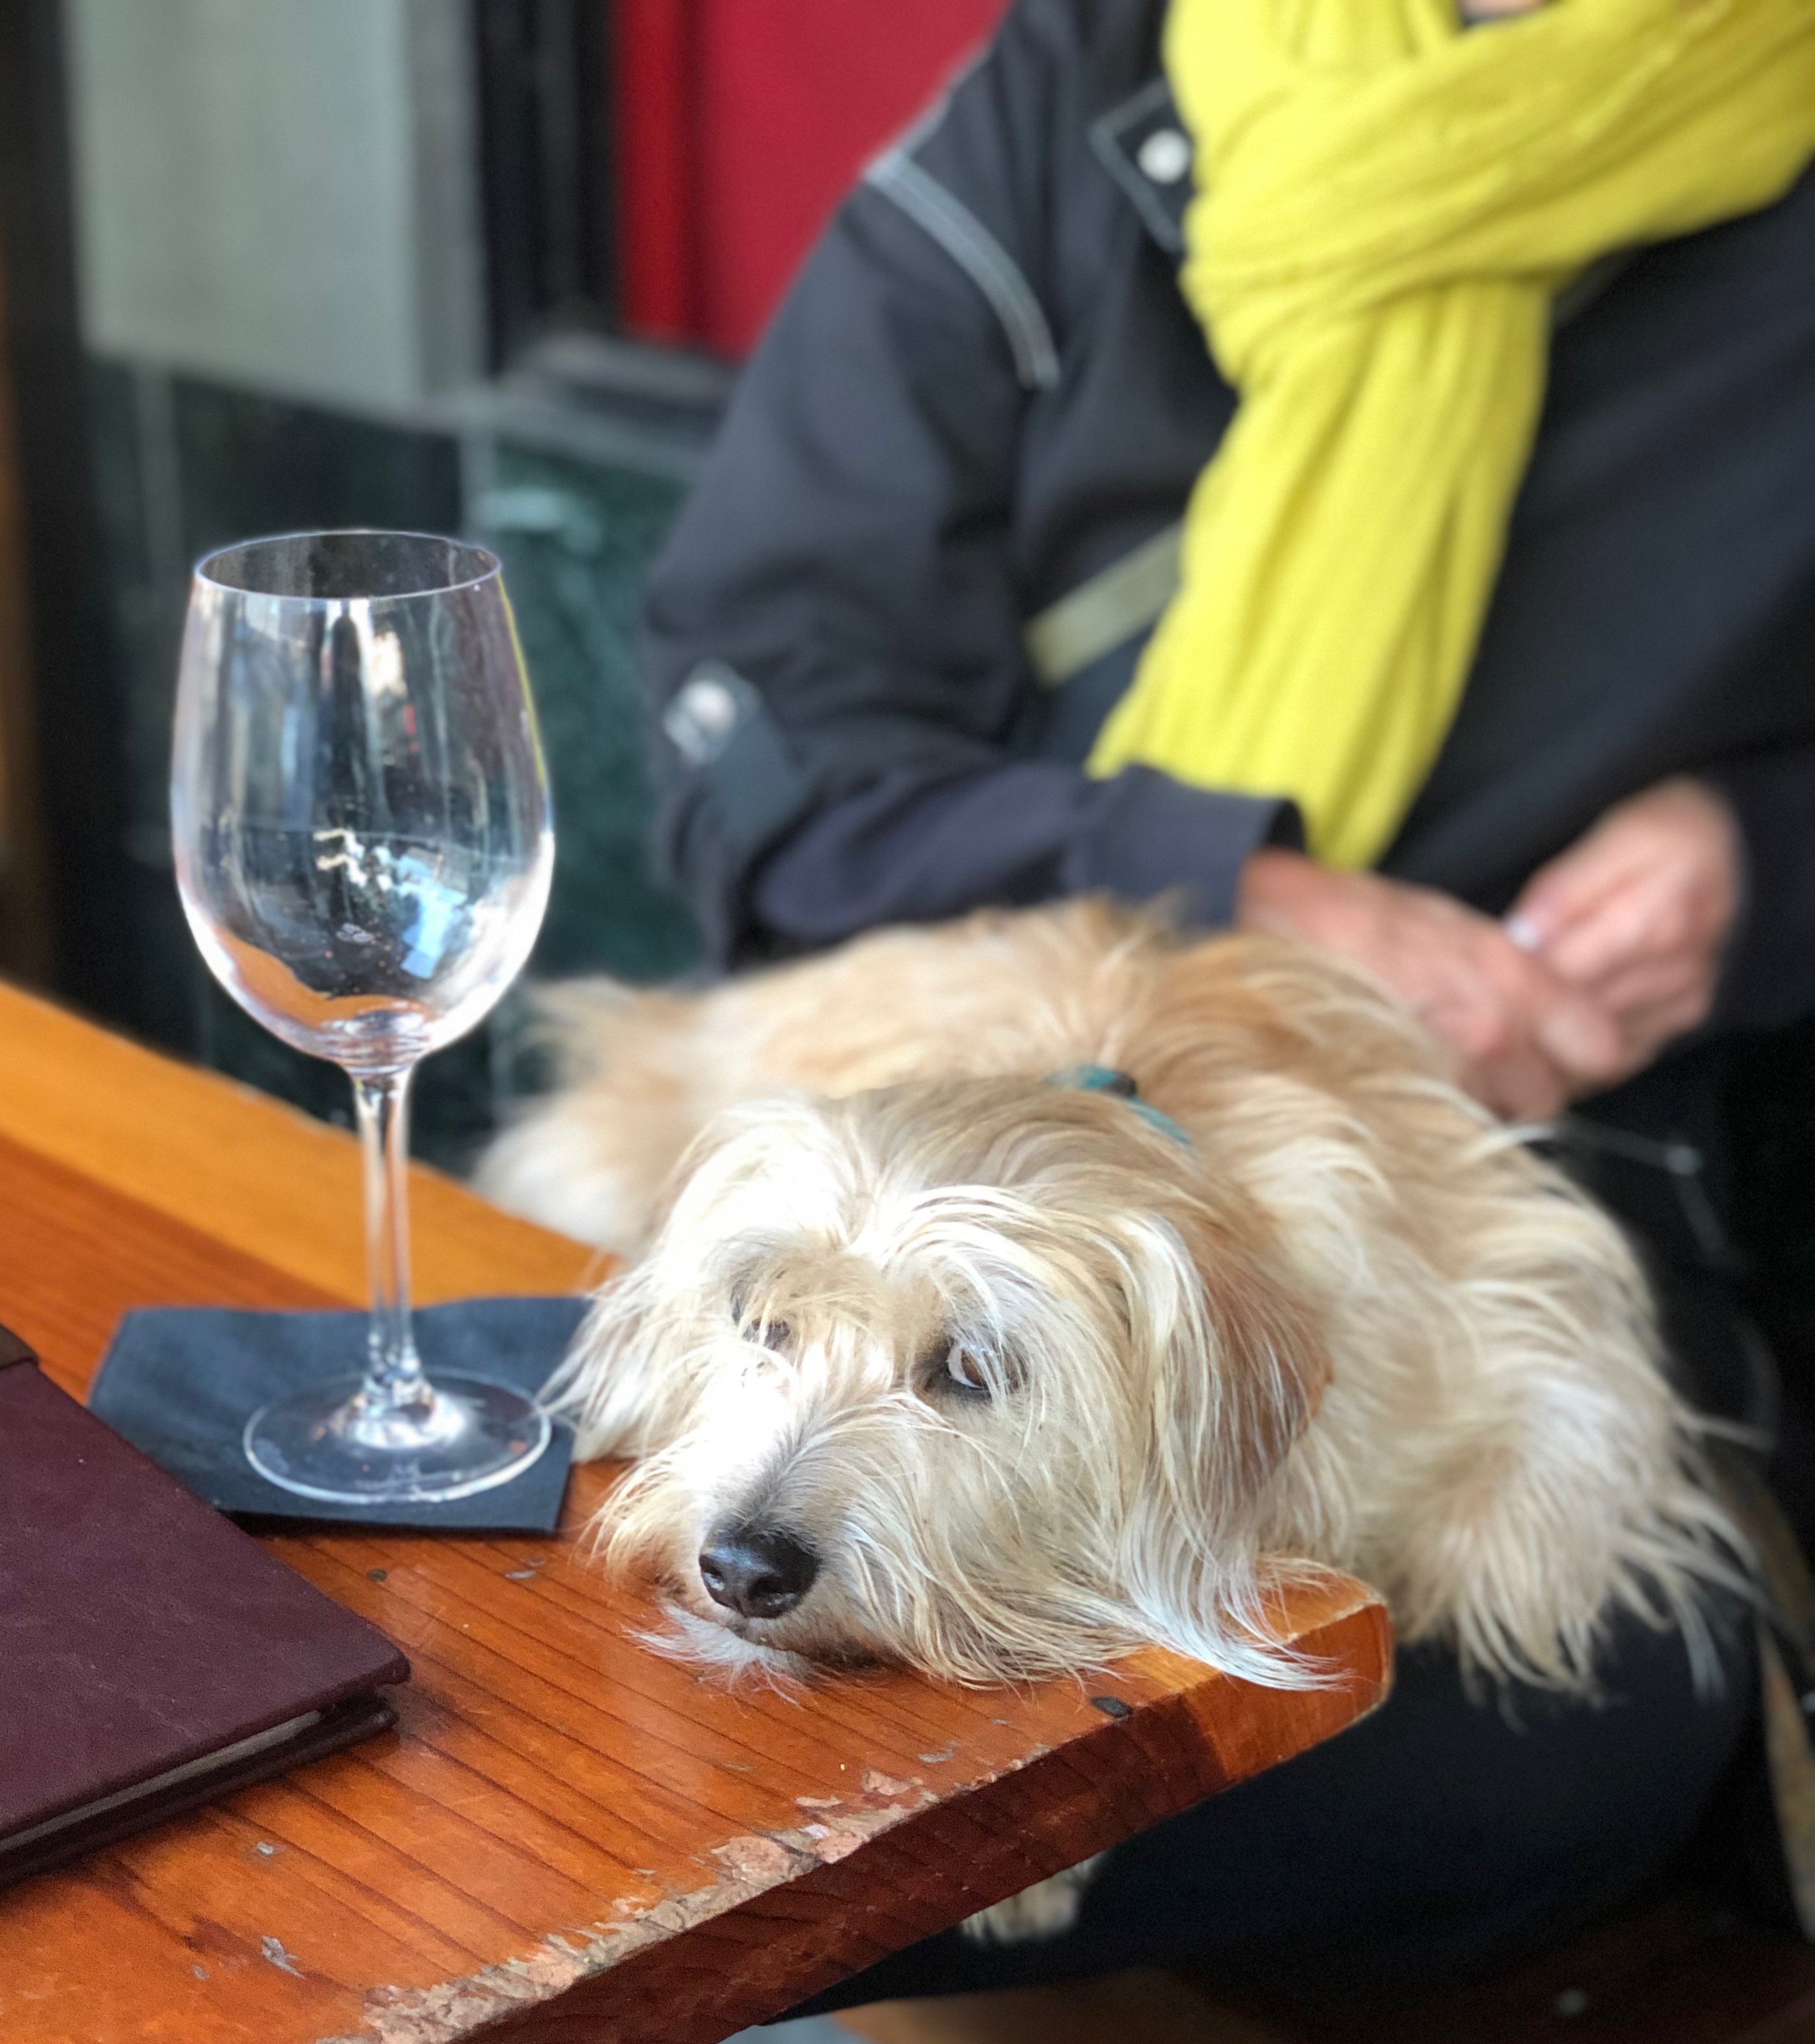 Pooped Pup Next To Empty Wine Glass